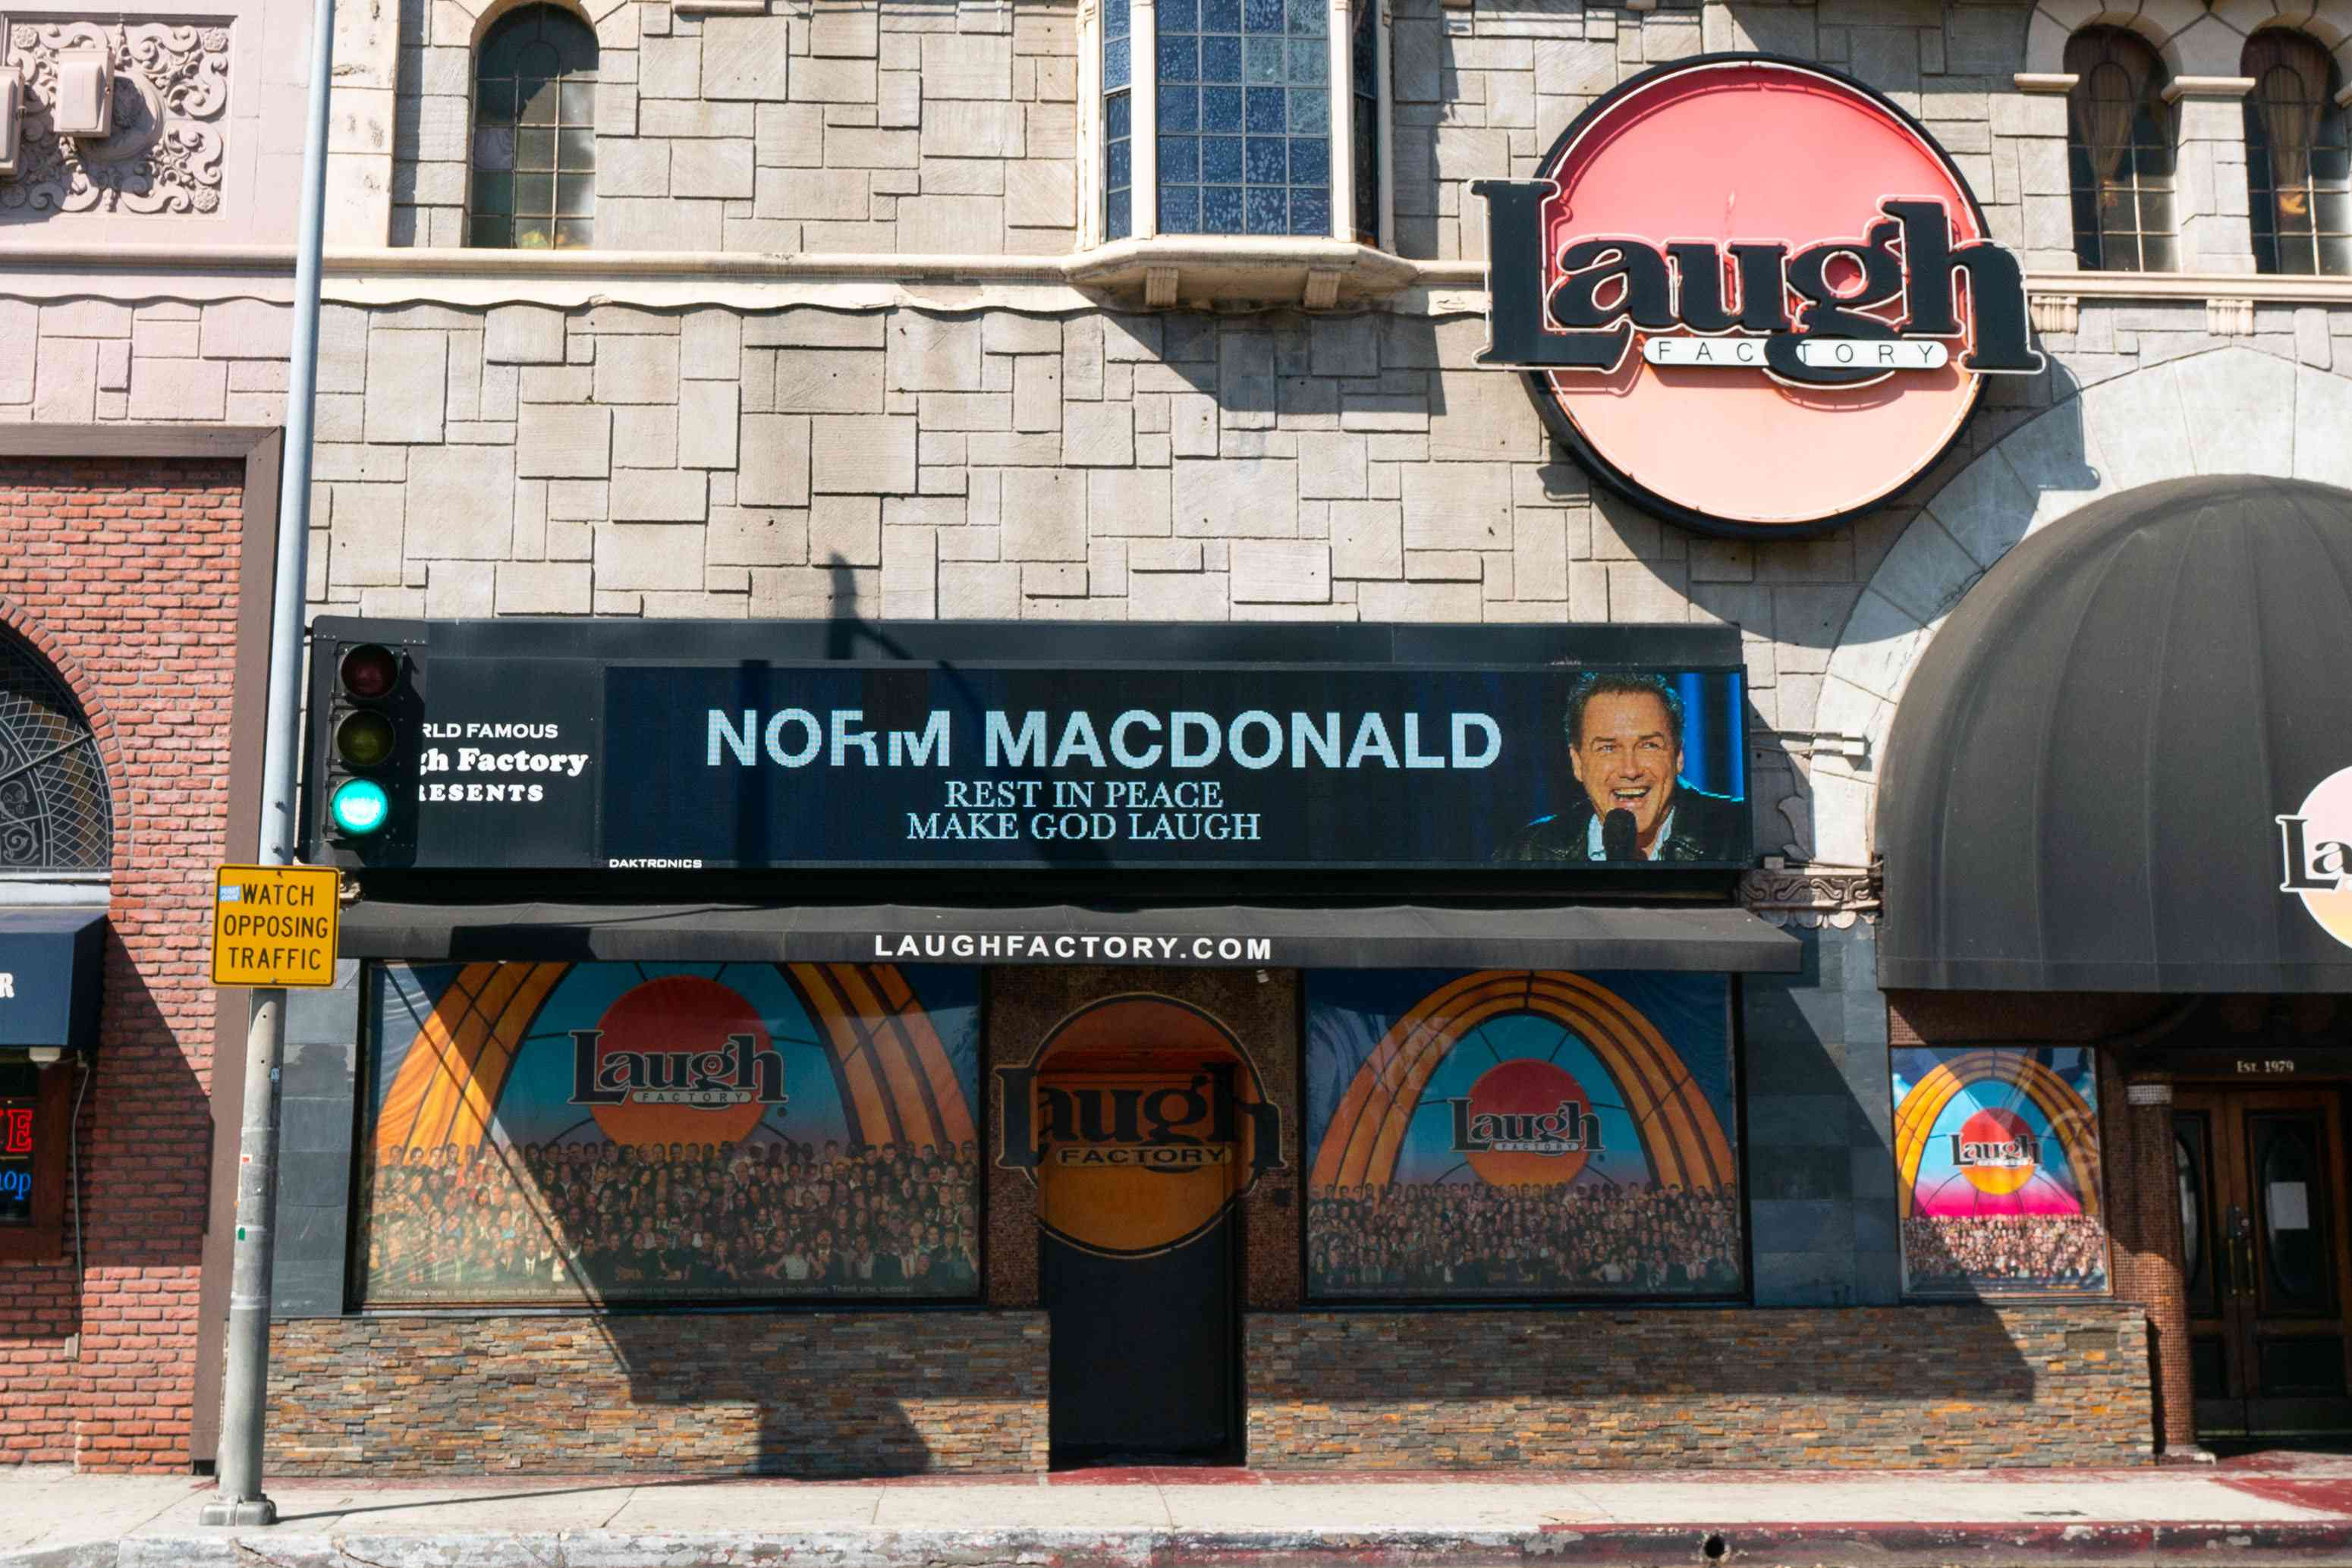 The Laugh Factory in Hollywood